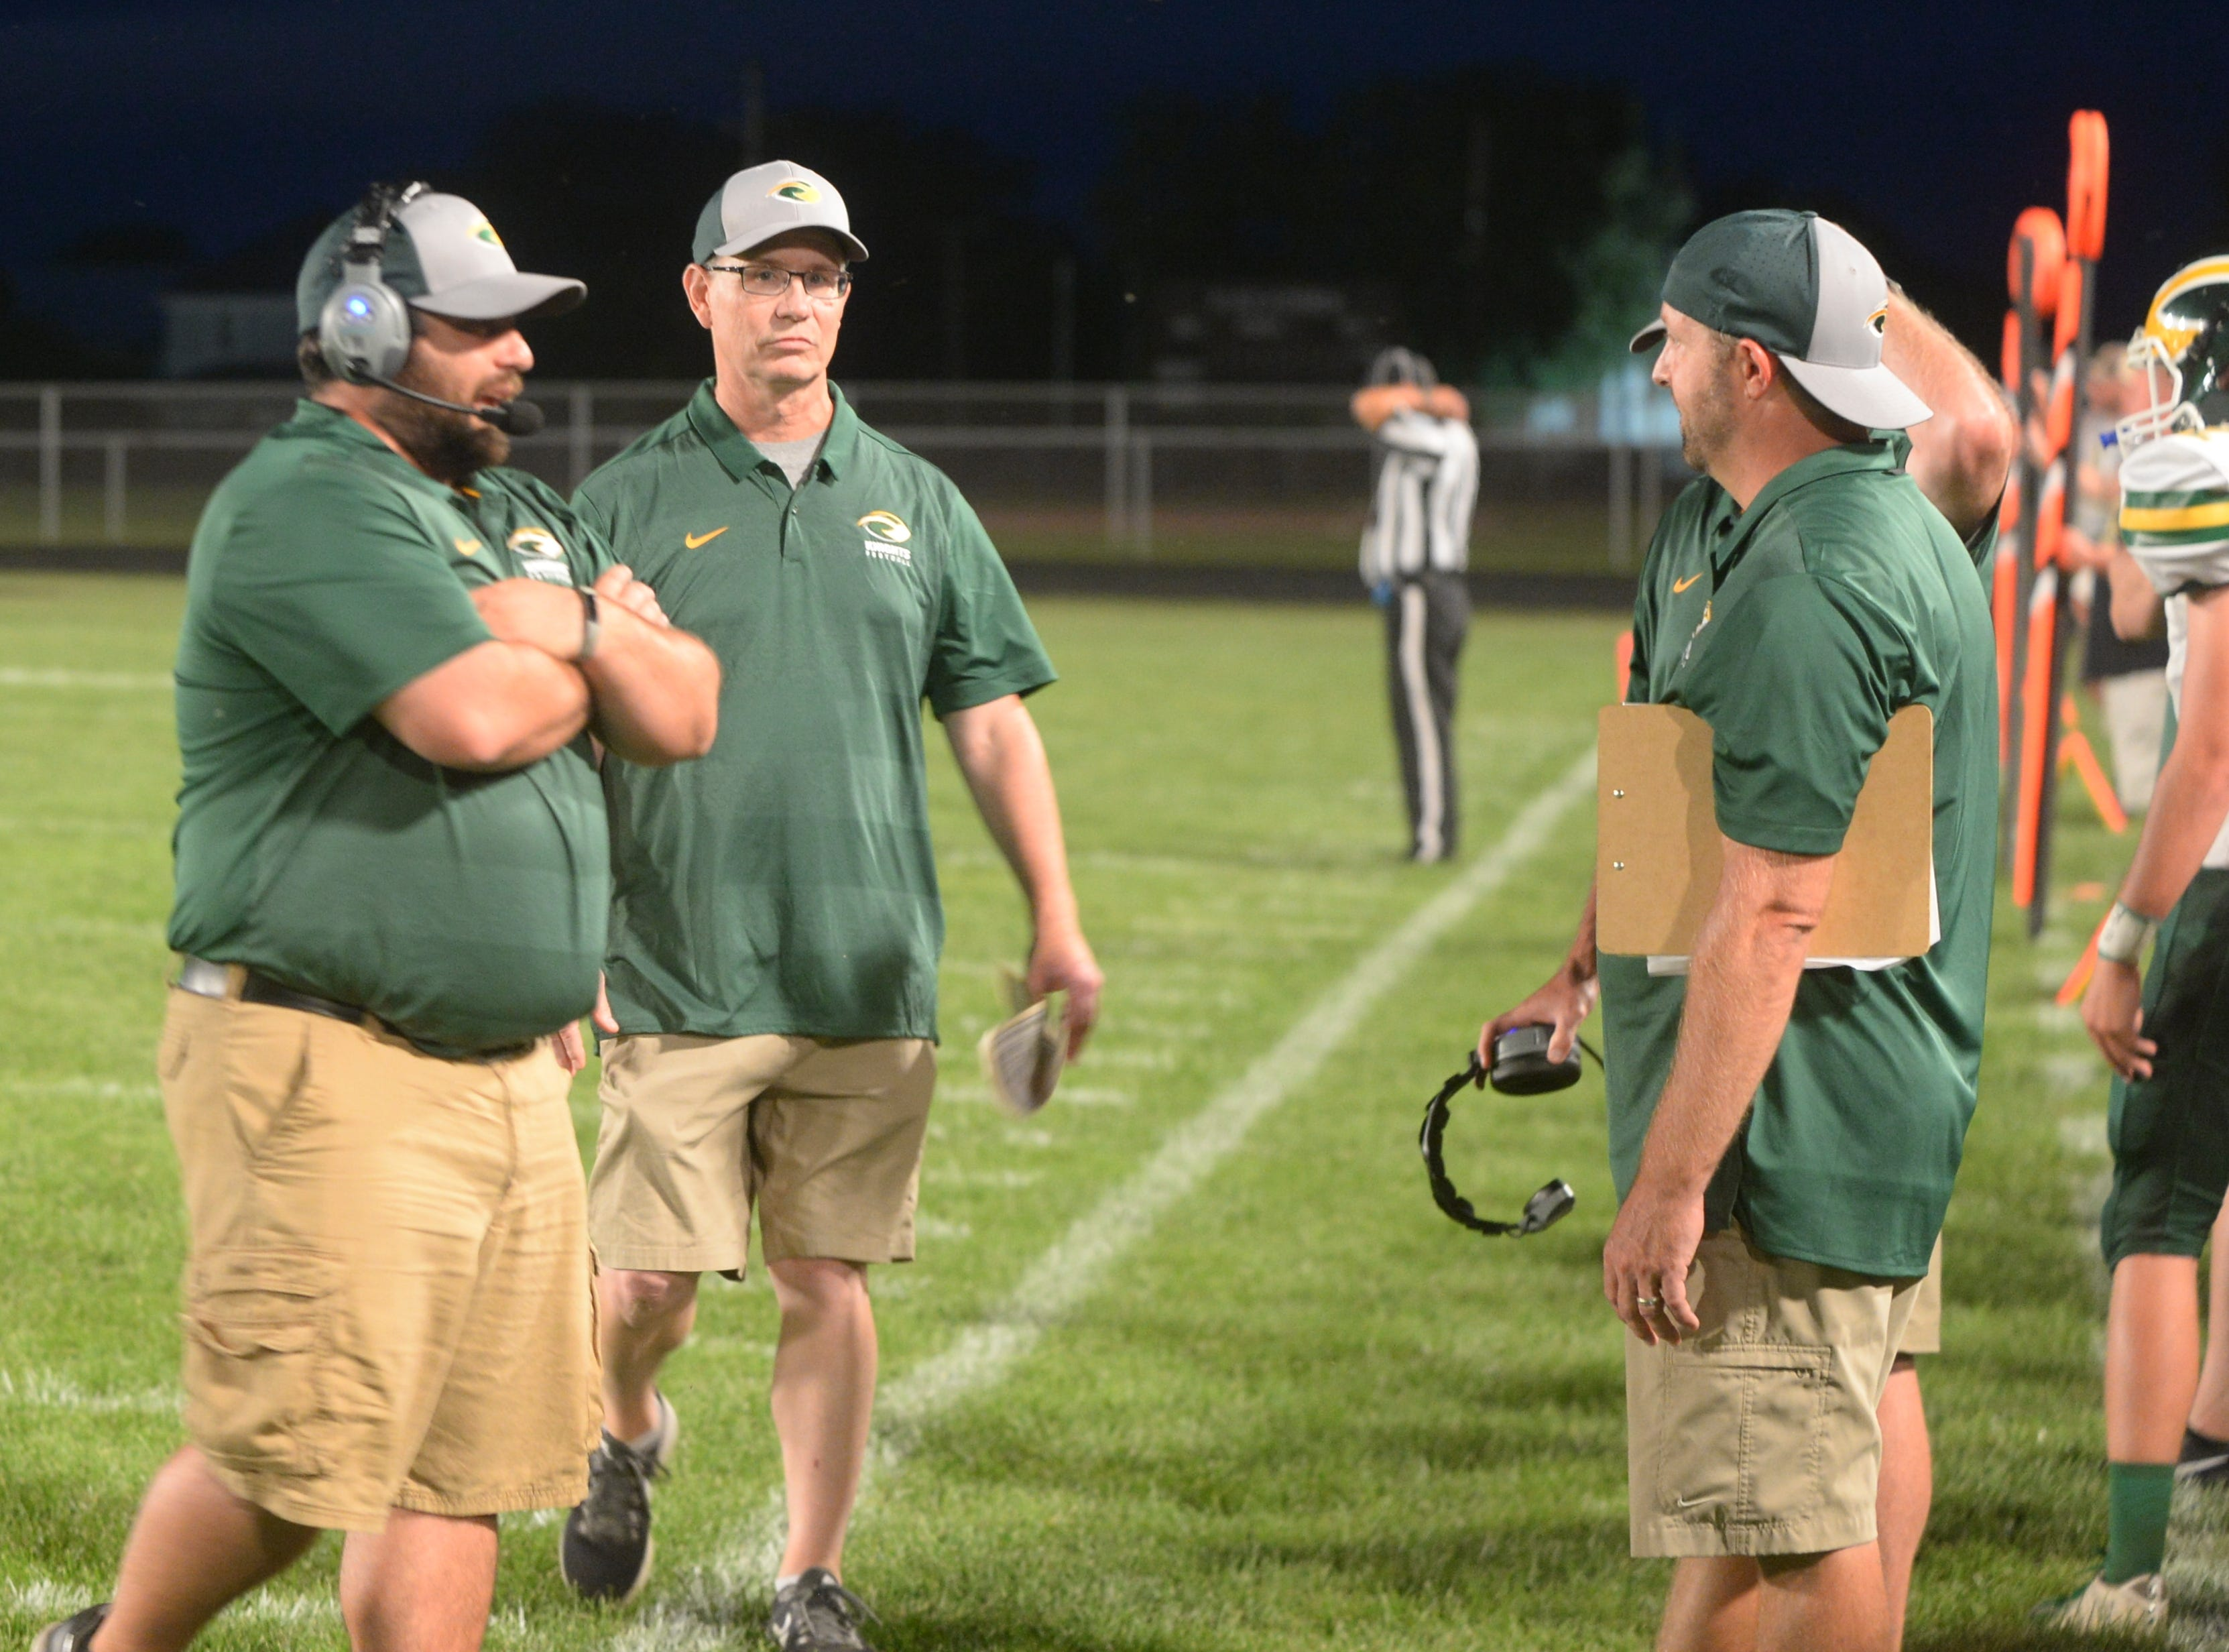 Northeastern head coach Mike Roeder (center) with his staff during a football game between Winchester and Northeastern Friday, Aug. 31, 2018. Northeastern won 24-20.